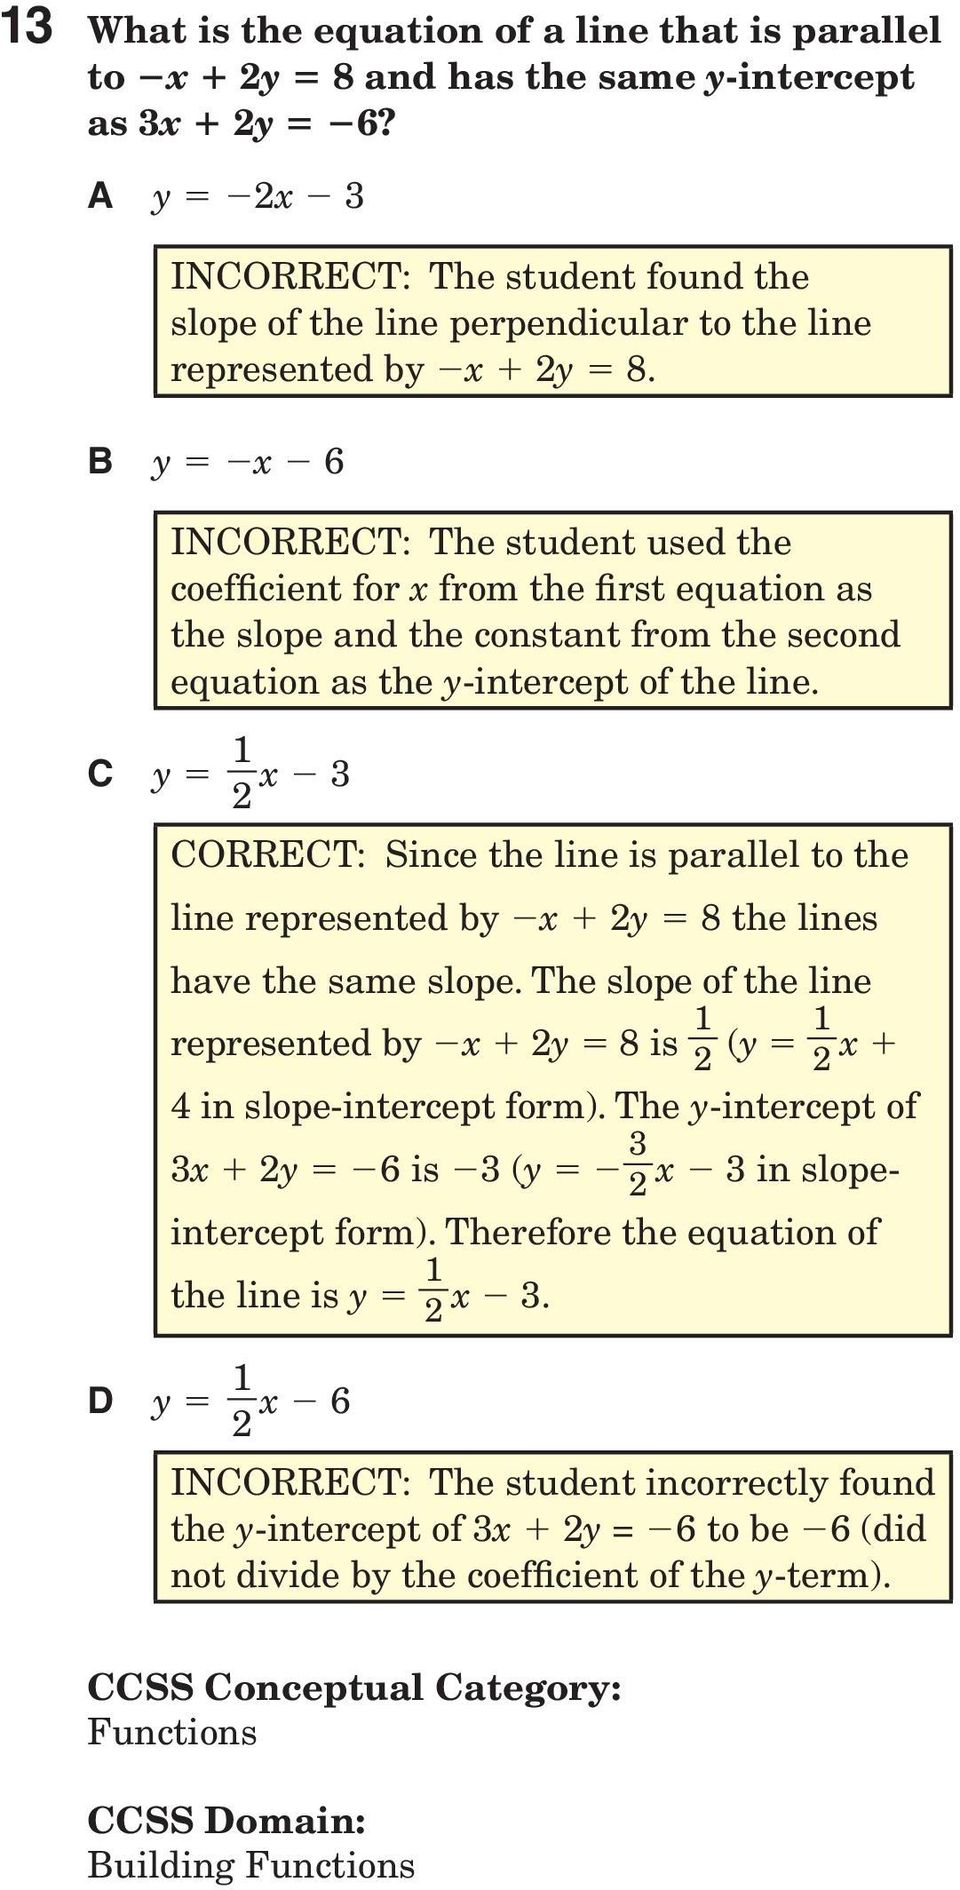 B y = x 6 INCORRECT: The student used the coefficient for x from the first equation as the slope and the constant from the second equation as the y-intercept of the line.